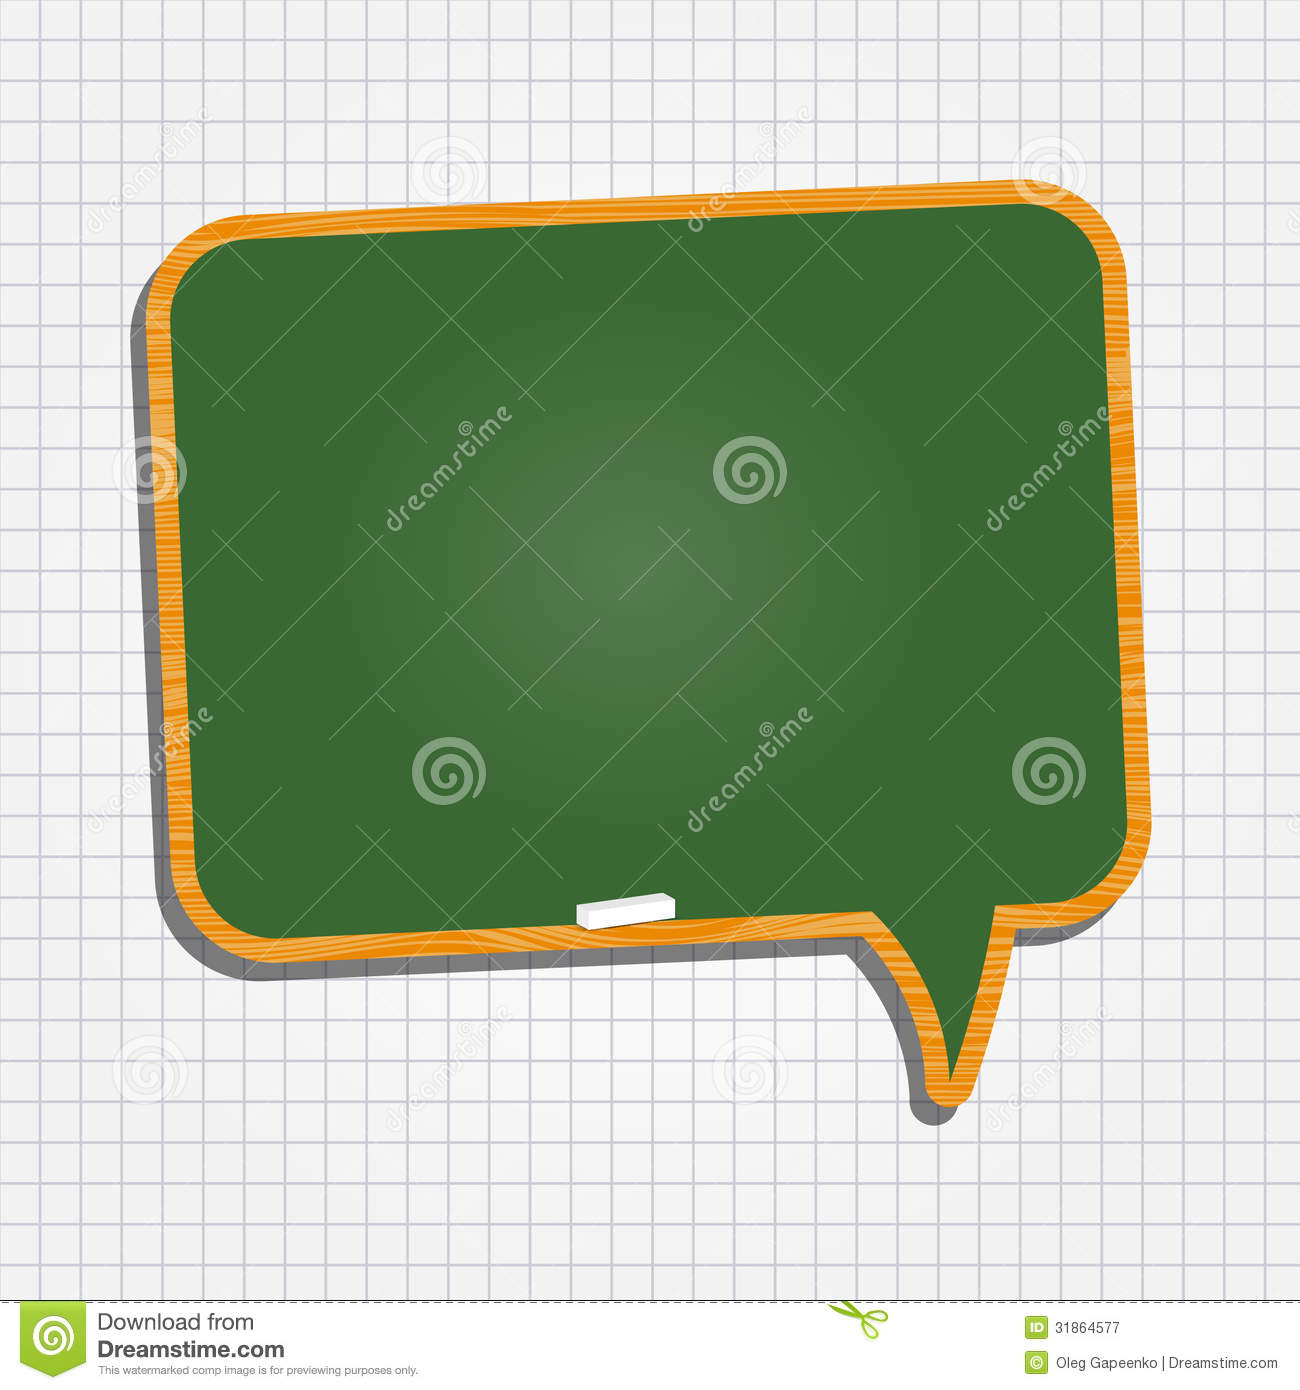 Notepad Pictogram Icon Image Vector Illustration